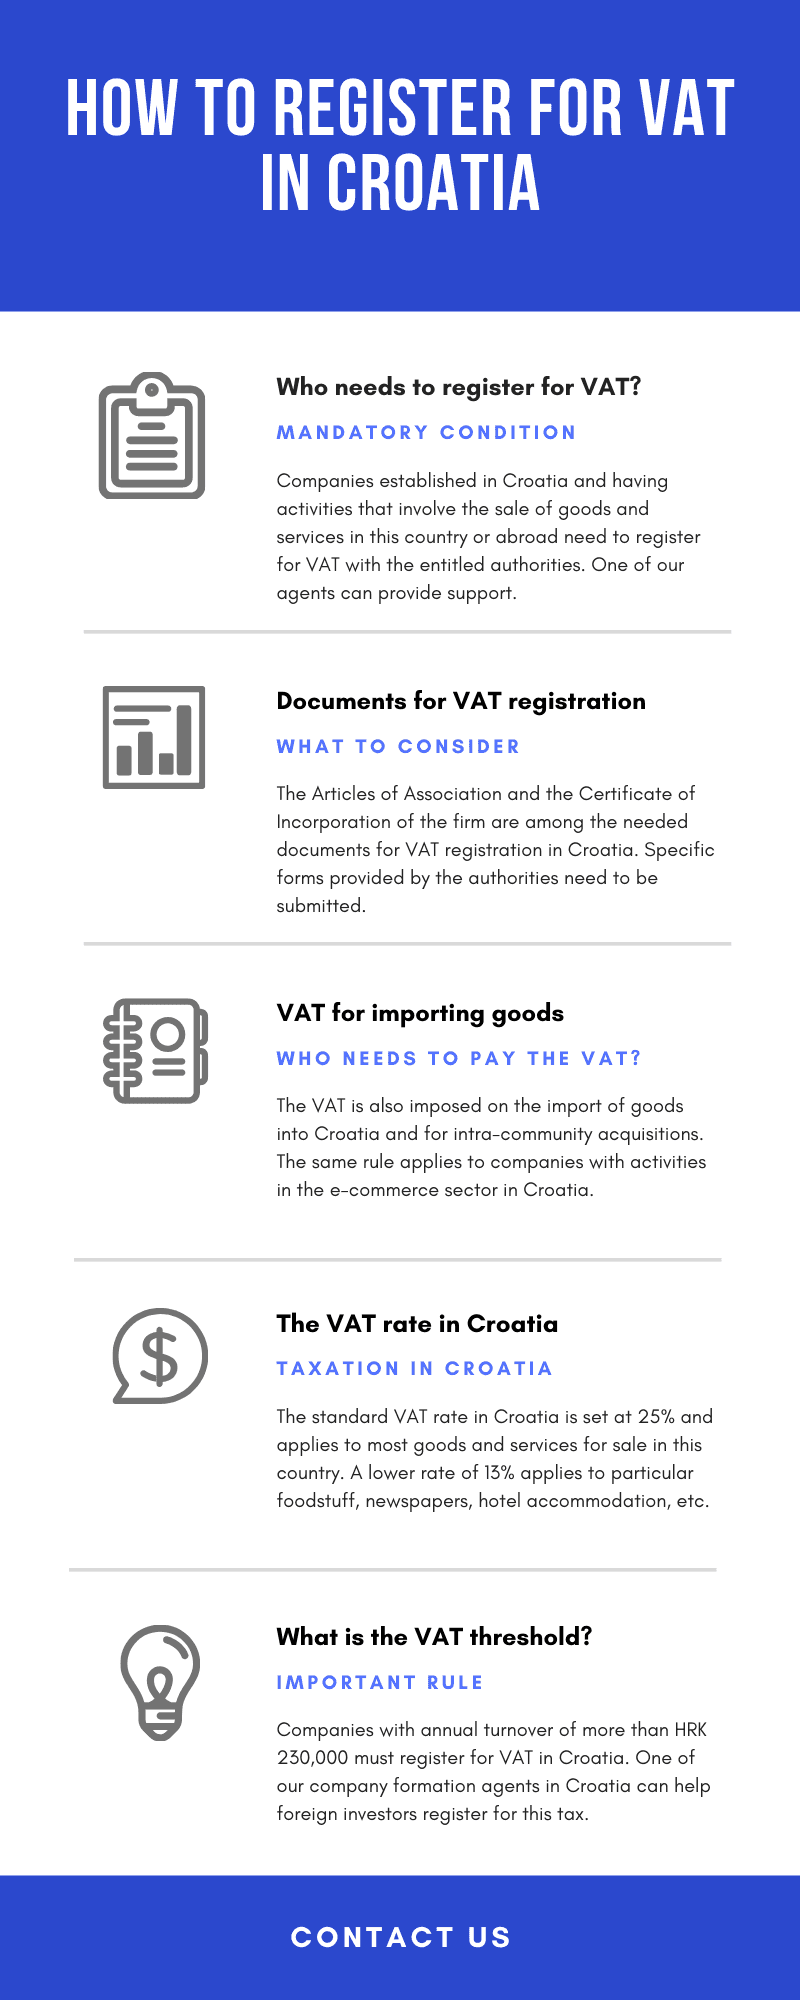 How to register for VAT in Croatia1.png